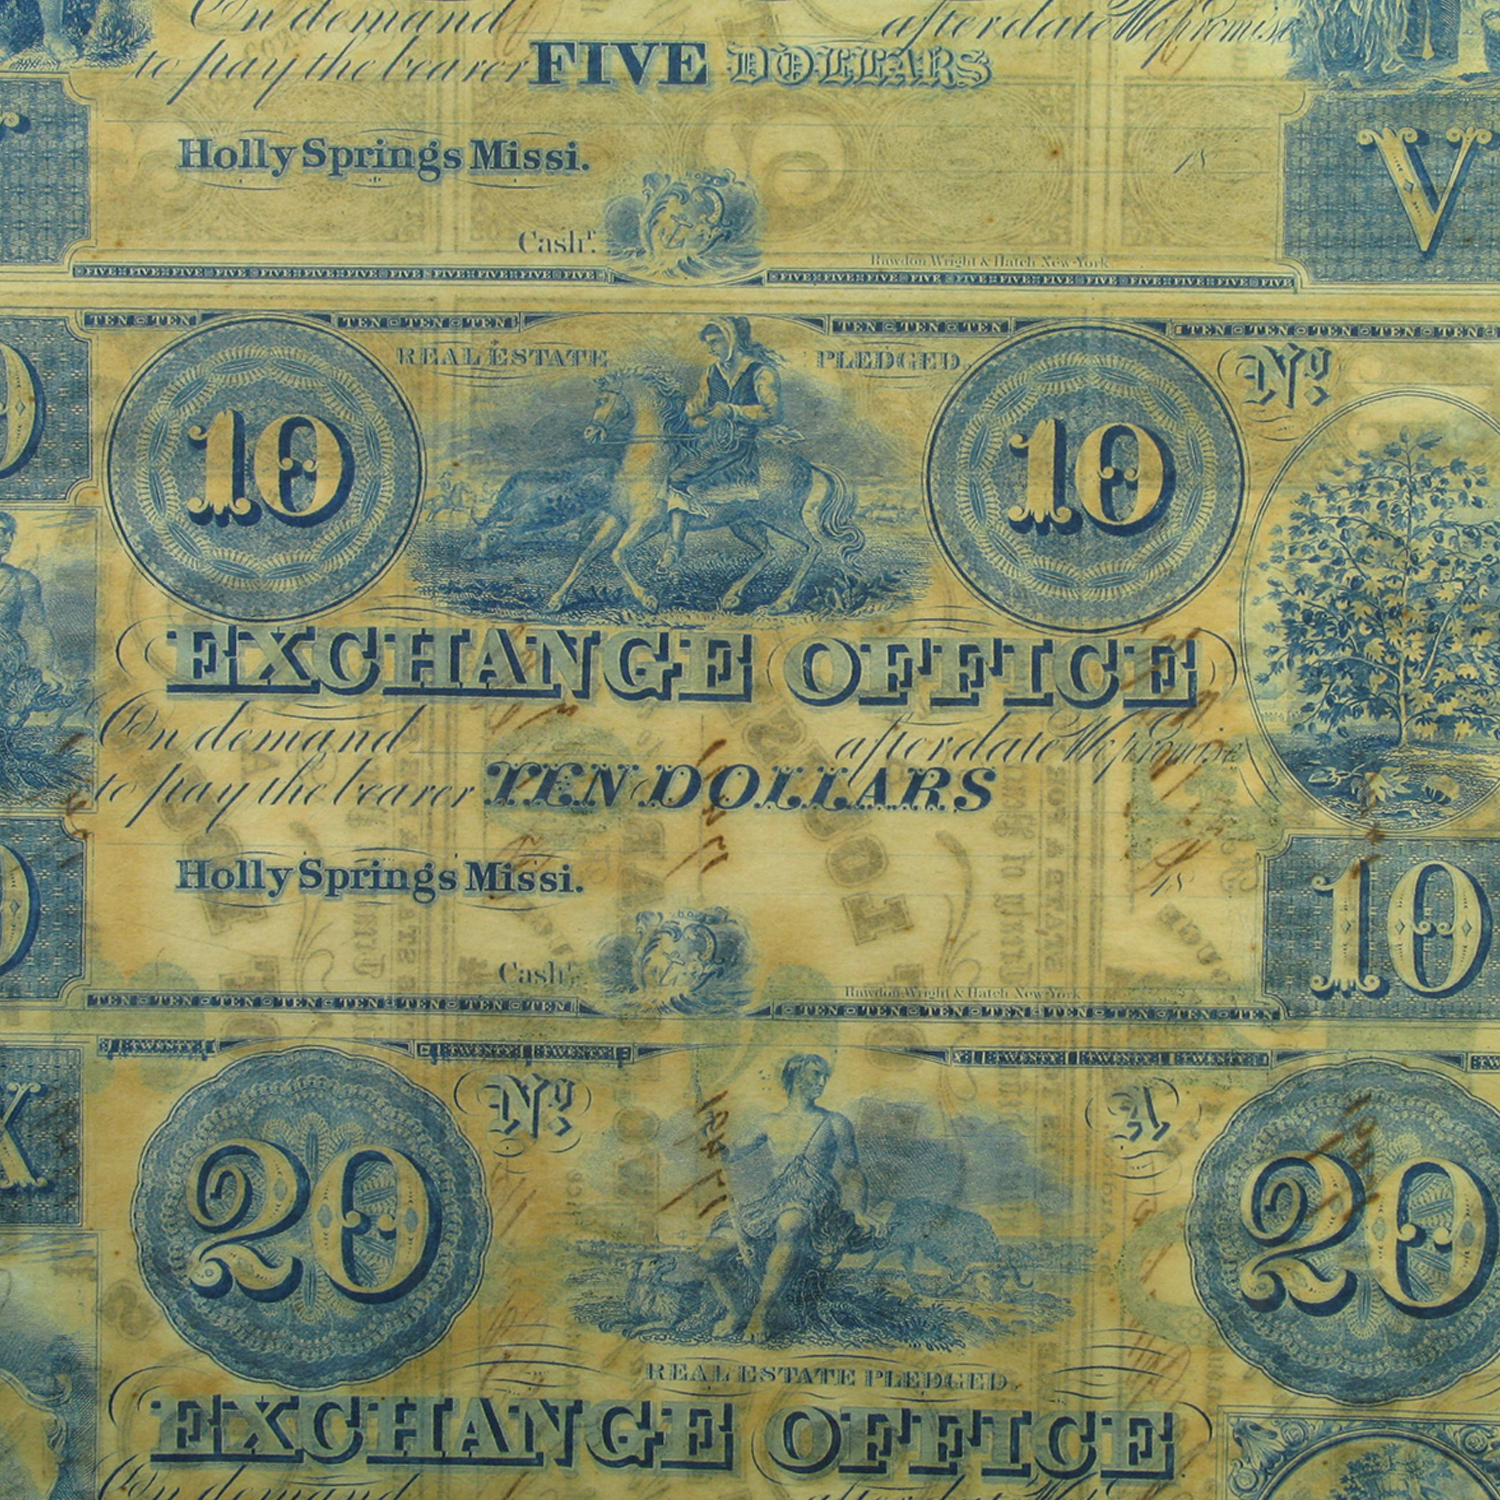 1862 UNCUT SHEET State of Louisiana $1-1-2-2-3-3 CR# 4-6-8